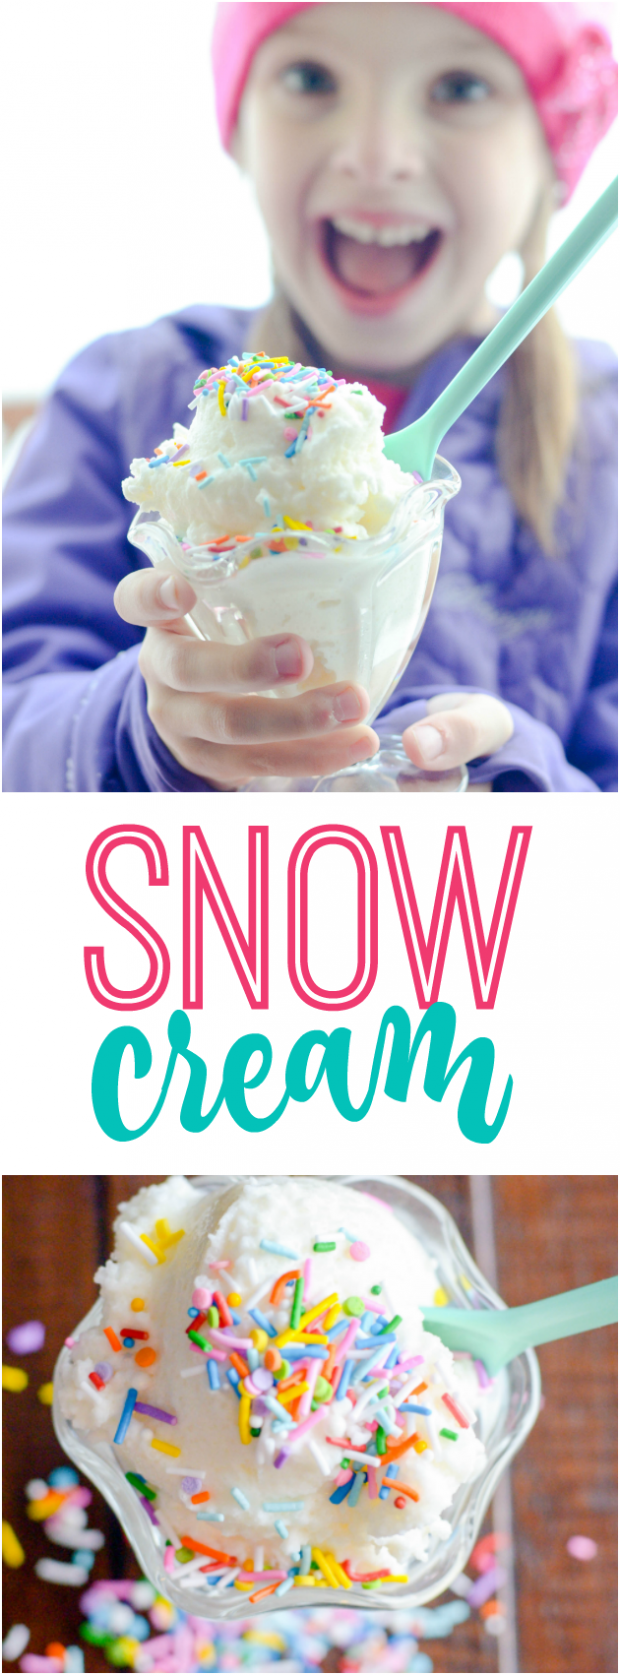 Easy two-ingredient snow cream is so much fun to make on a wintery snow day!